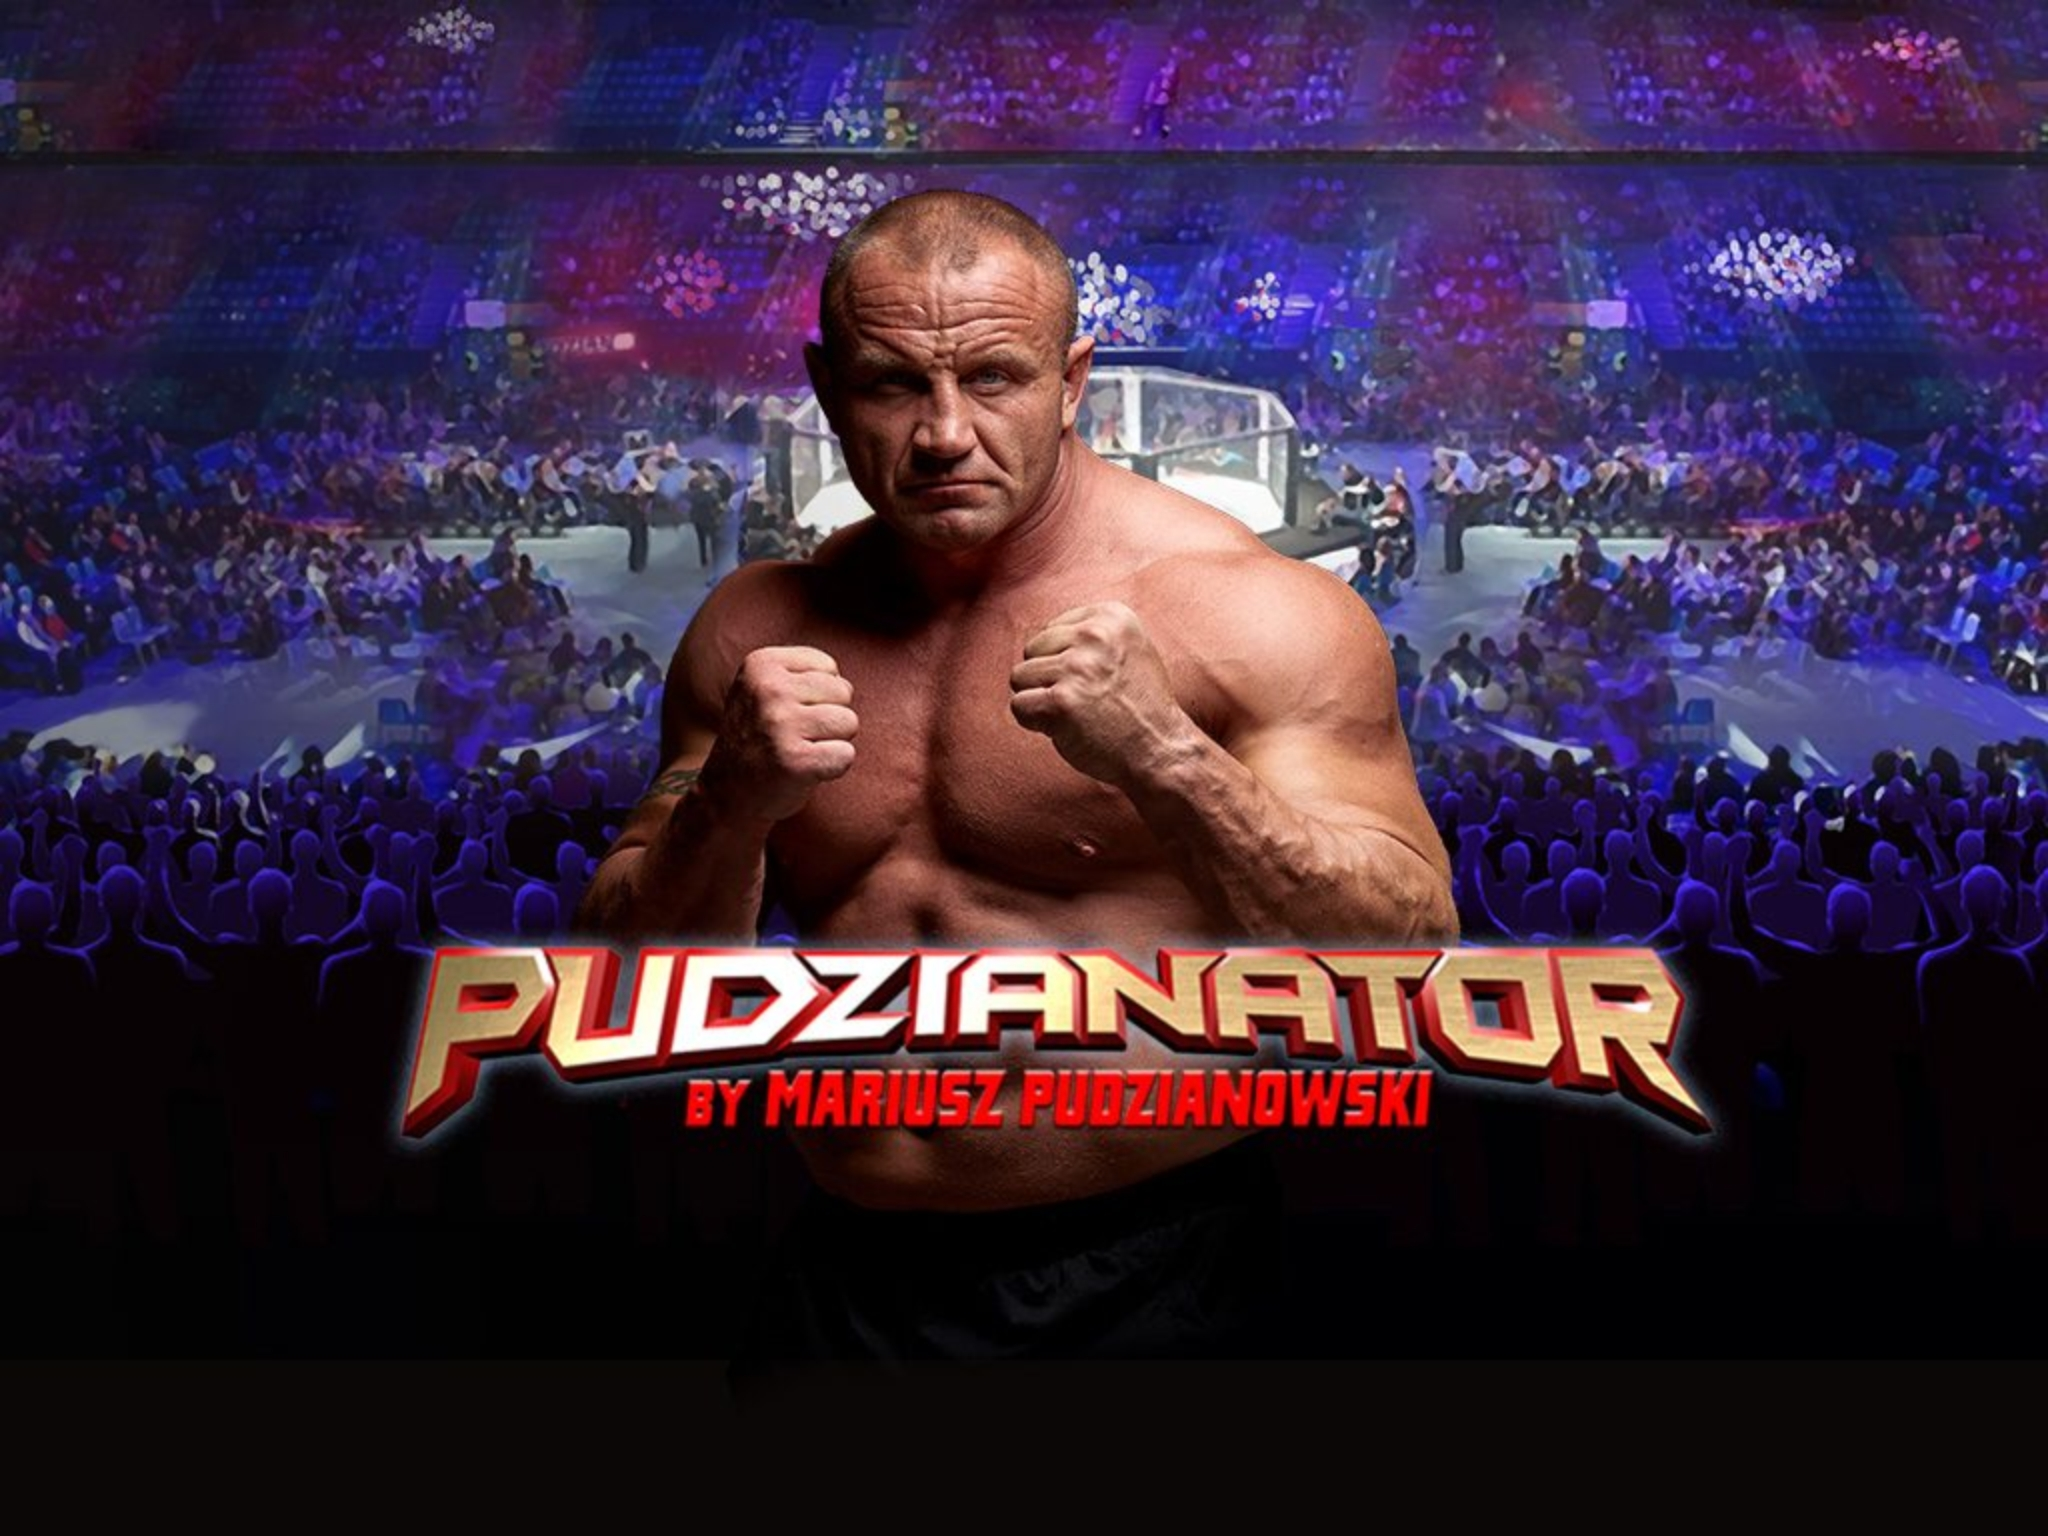 Se Pudzianator Online Slot Demo Game, Promatic Games